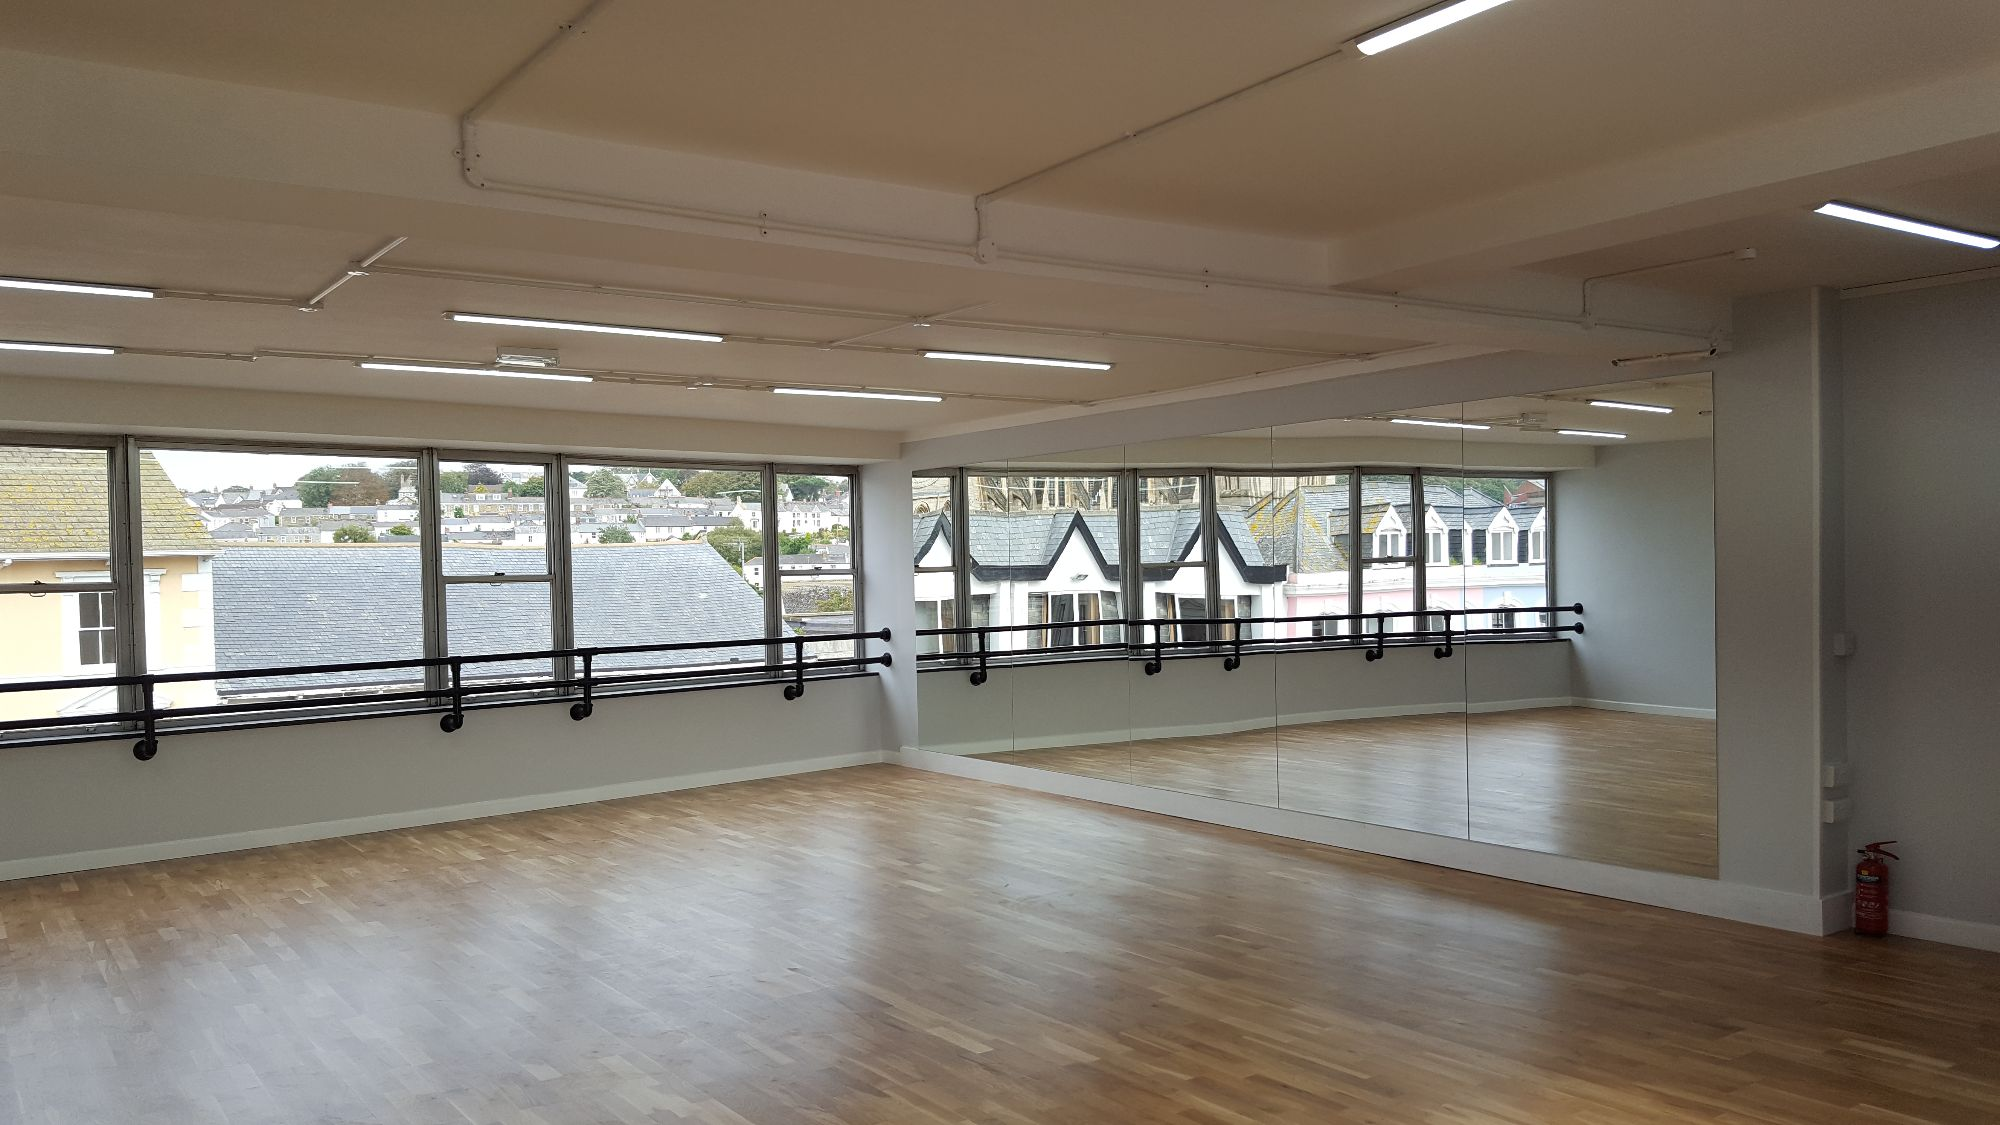 Dance Studio or Fitness Studio for hire in the centre of Truro City in Cornwall. Suitable for rehearsals, group or private bookings.